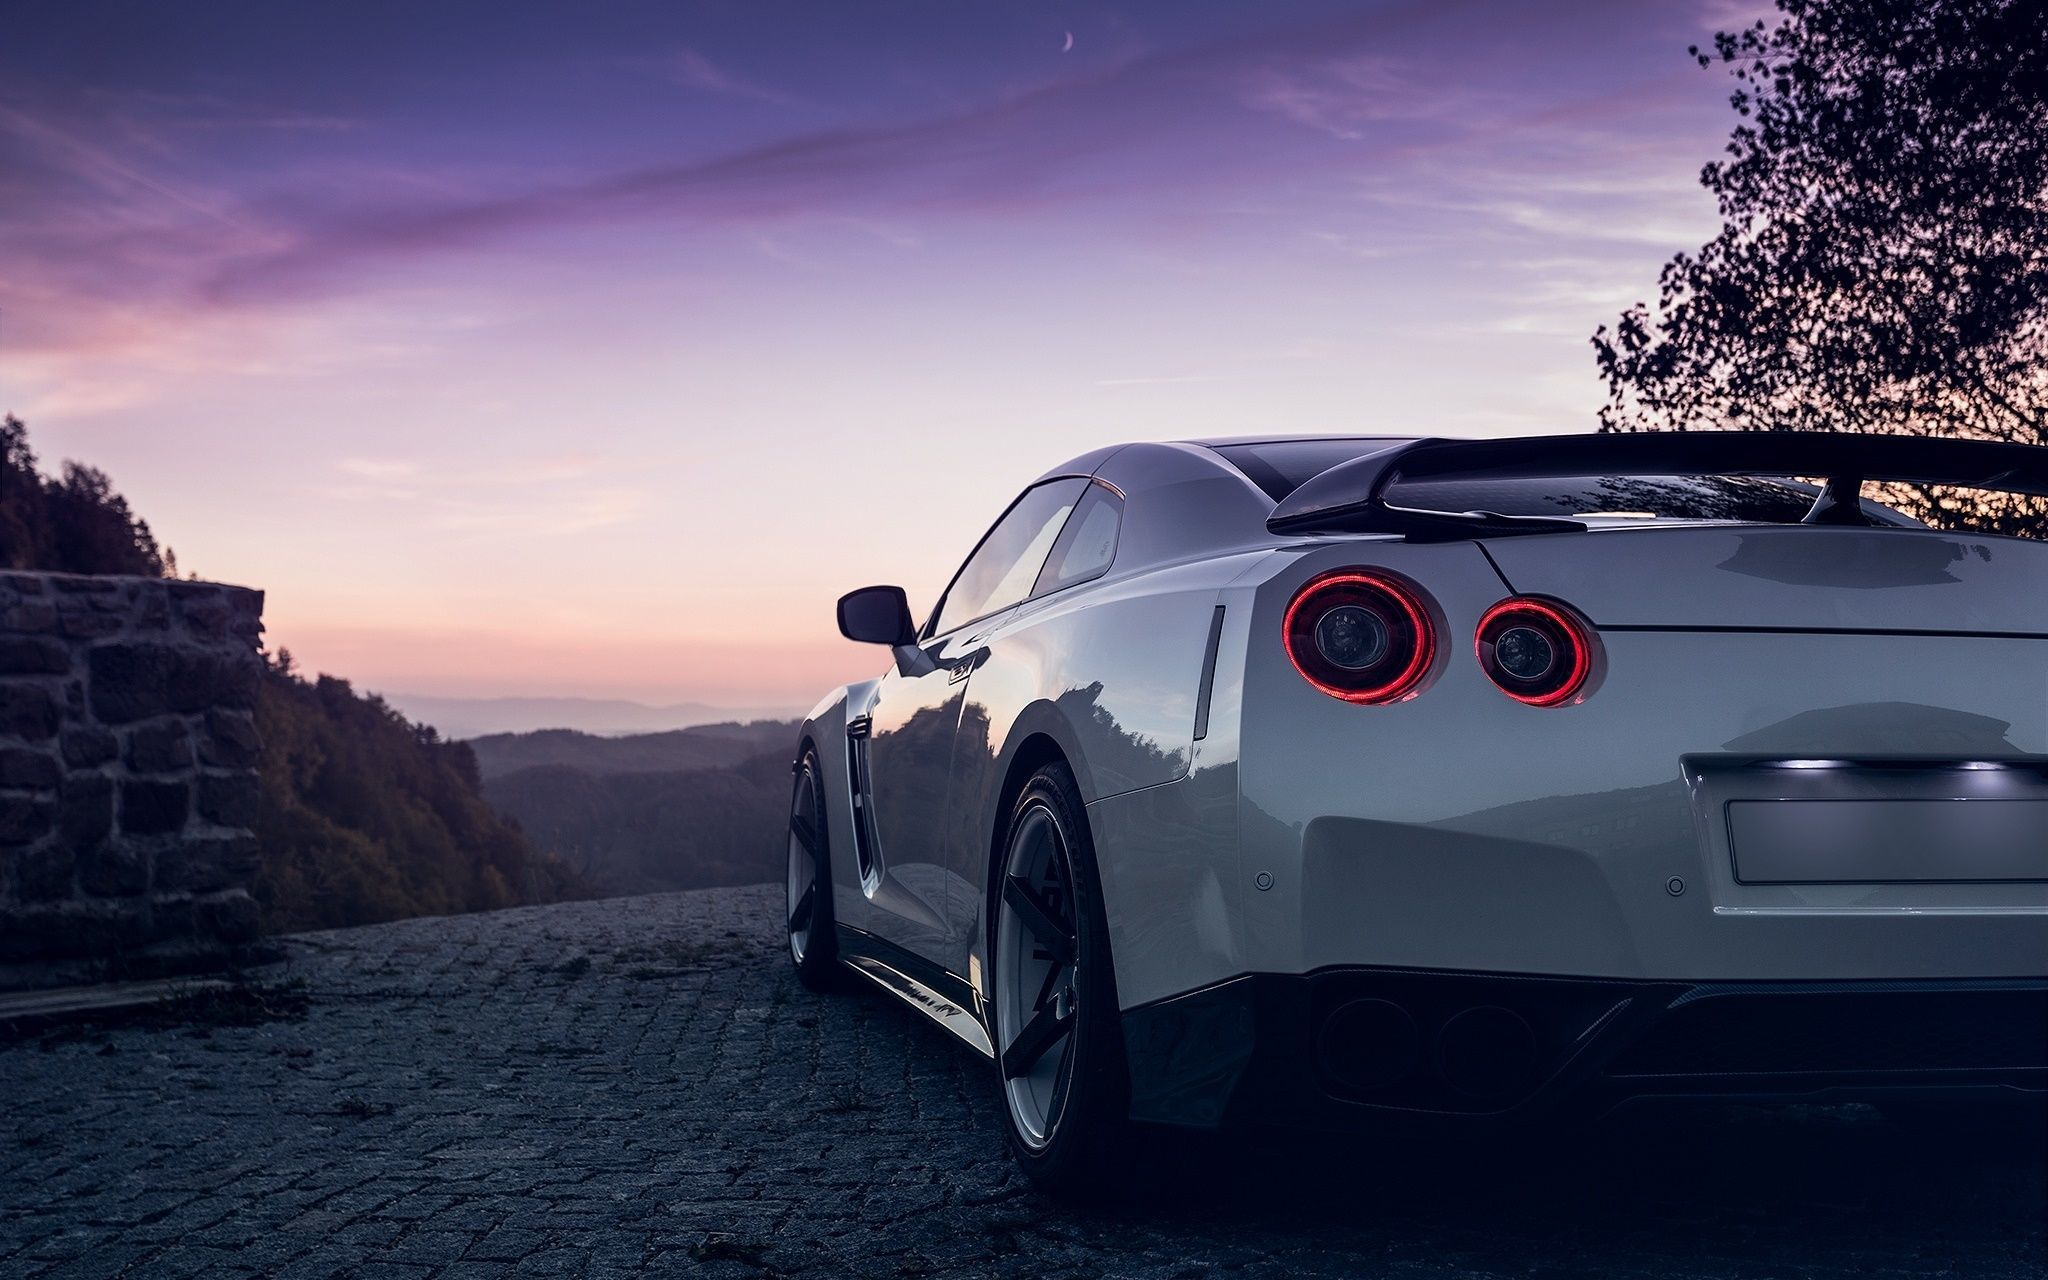 White Gtr Wallpapers Top Free White Gtr Backgrounds Wallpaperaccess